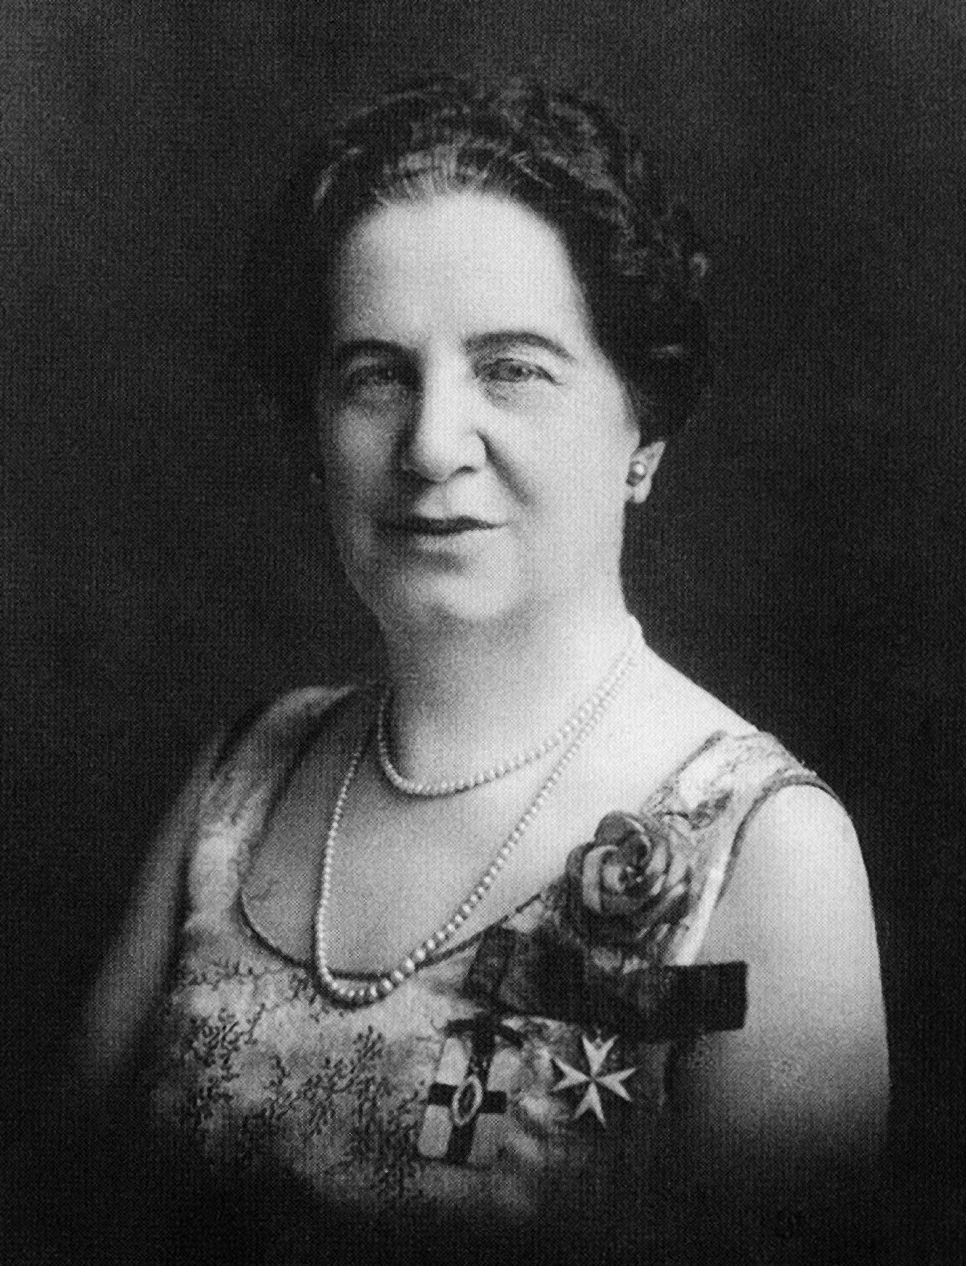 Emily Murphy, born on March 14, 1868 was a Canadian women